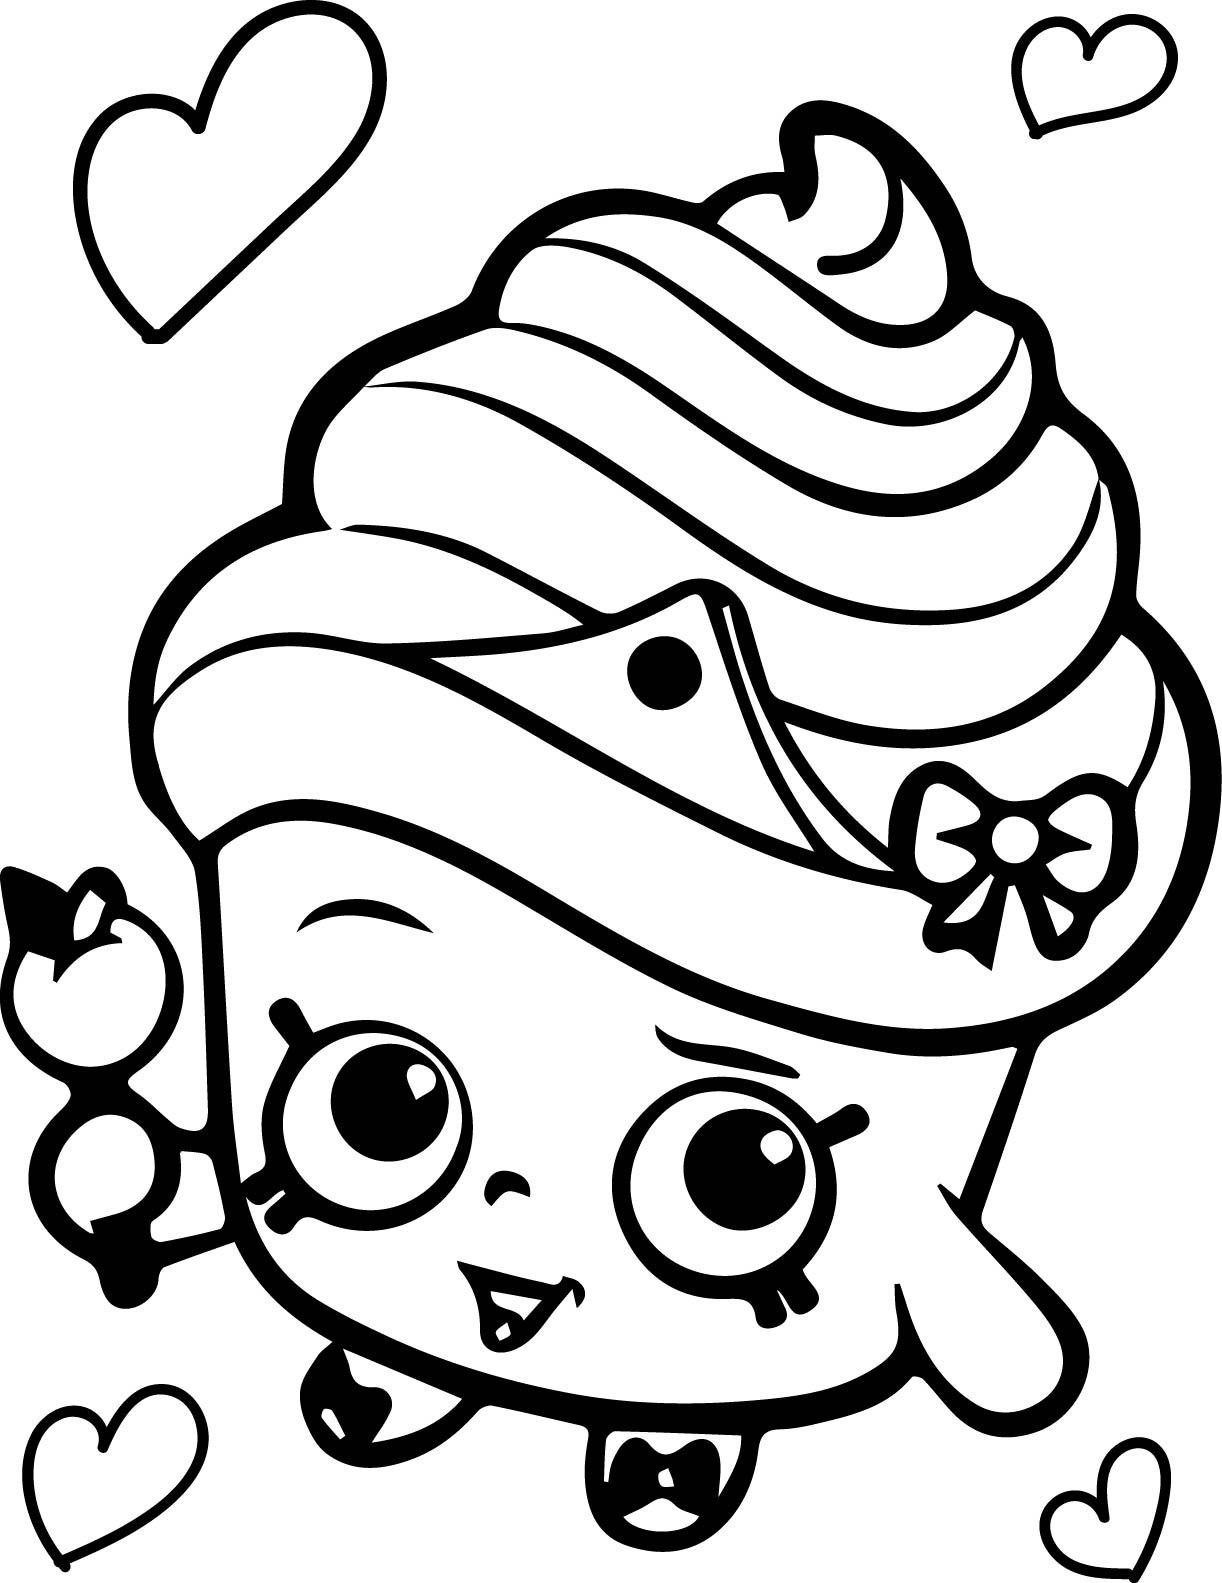 1222x1583 Shopkins Queen Cupcake Coloring Page Free